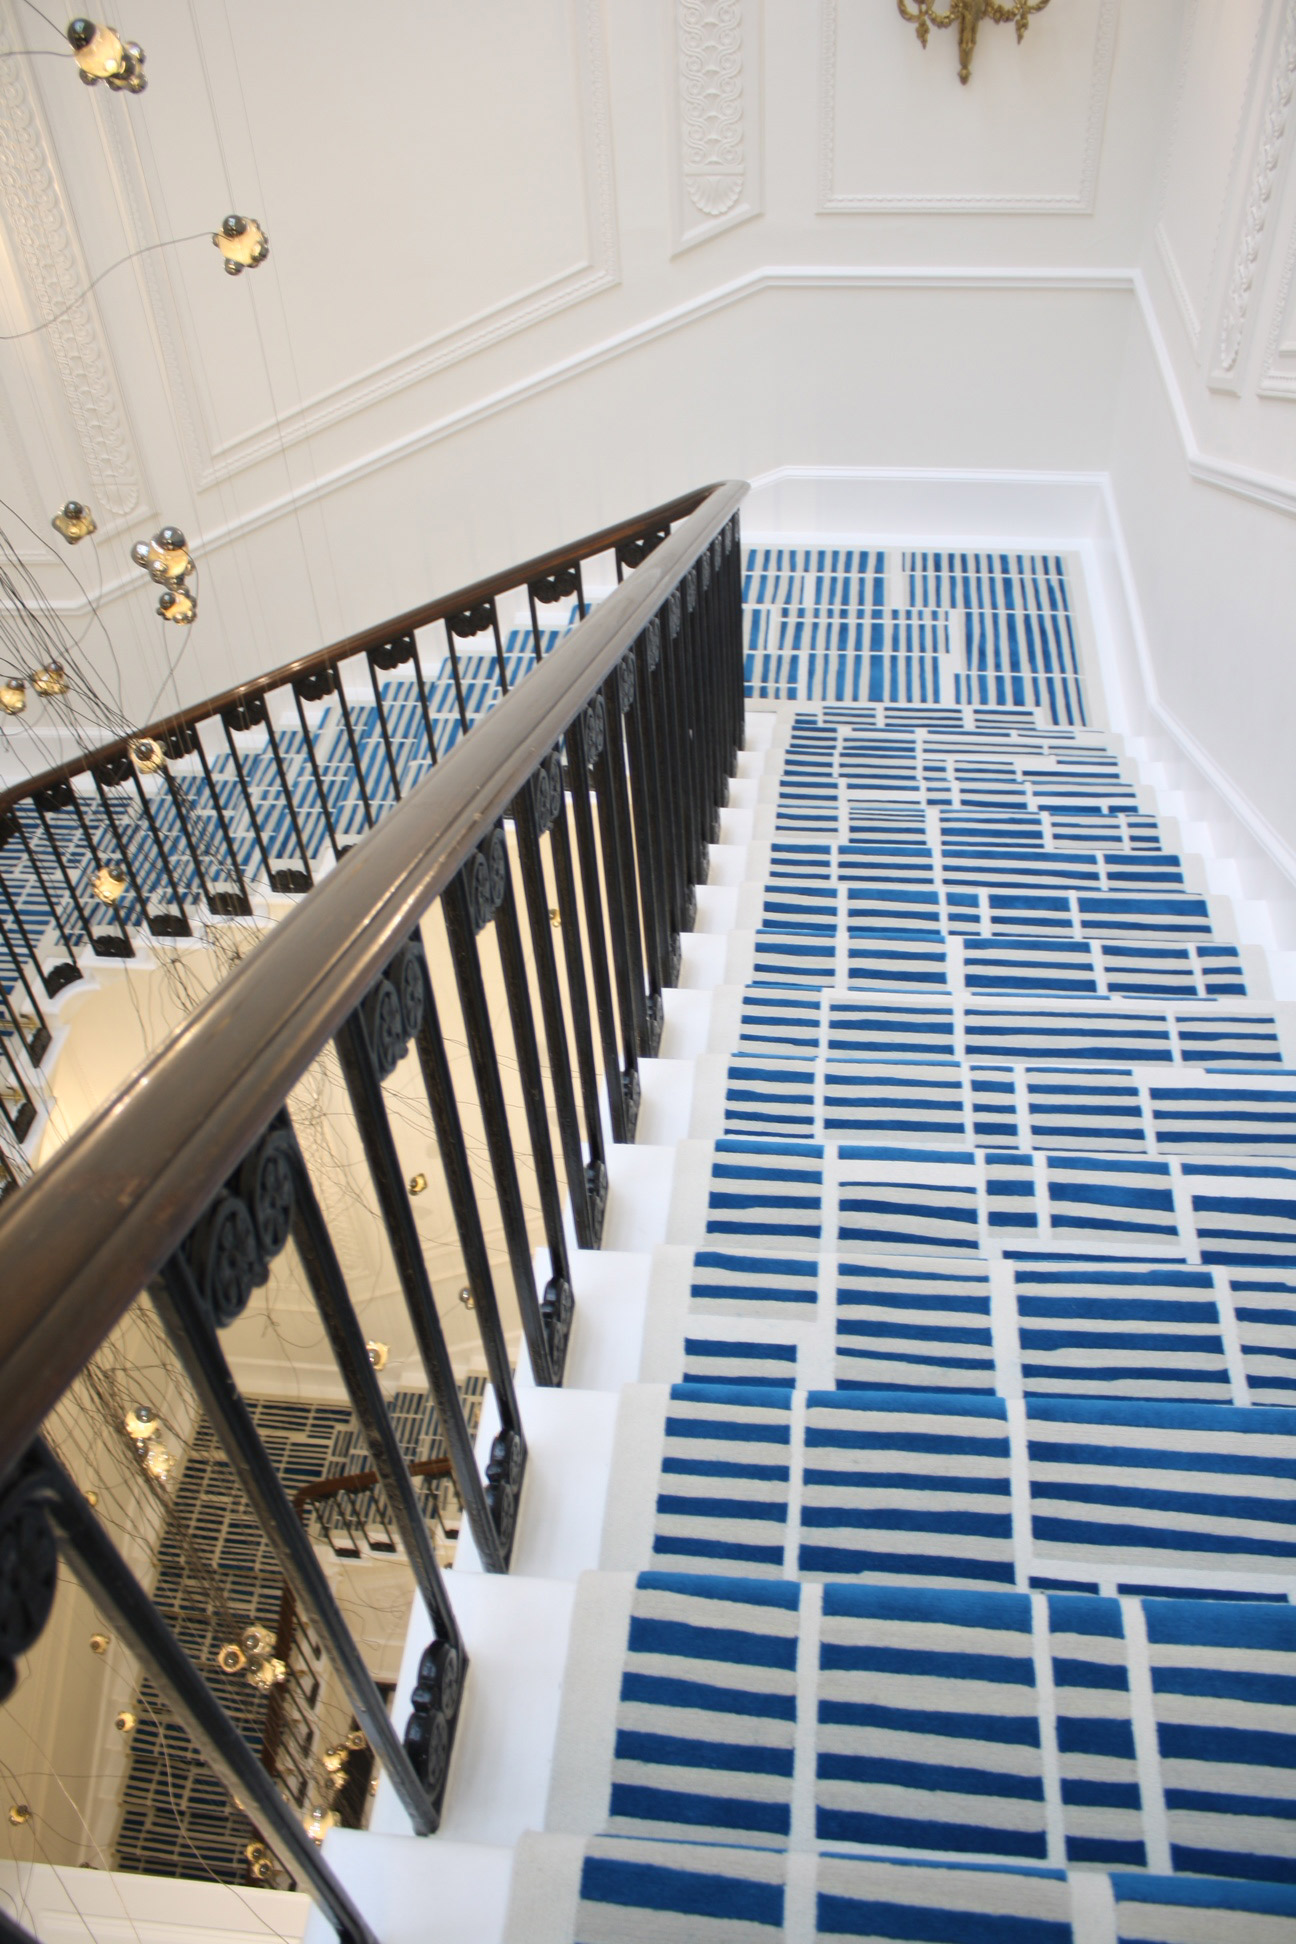 The cascading1829 staircase is enhanced by a contemporary handtufted carpet. CMI created a carpet design from original artwork by Vancouverartist Elizabeth McIntosh. Photo: ©Creative Matters